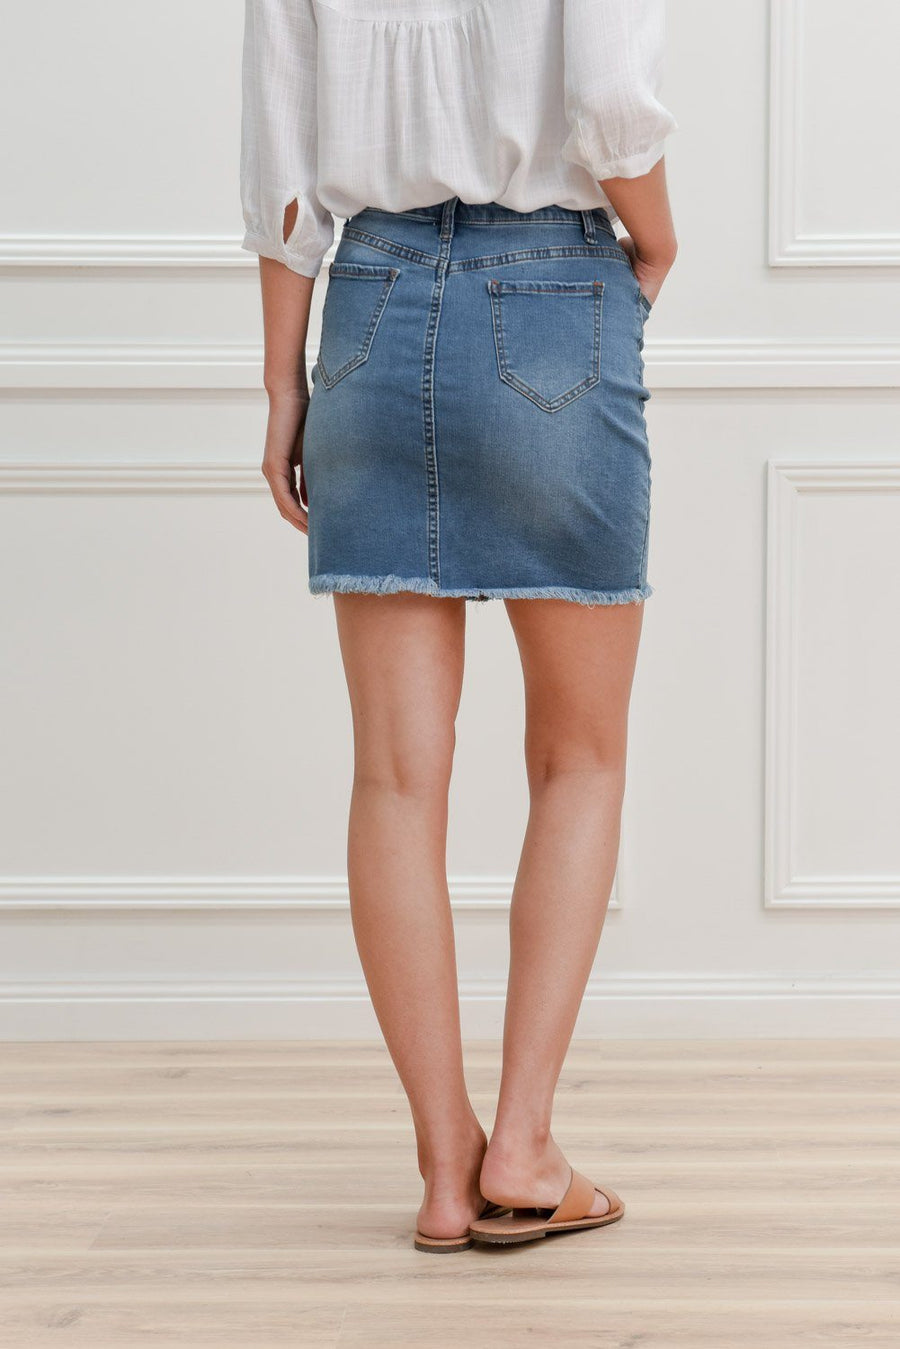 Lenny Skirt | Mid Blue Denimn Skirt Gray Label